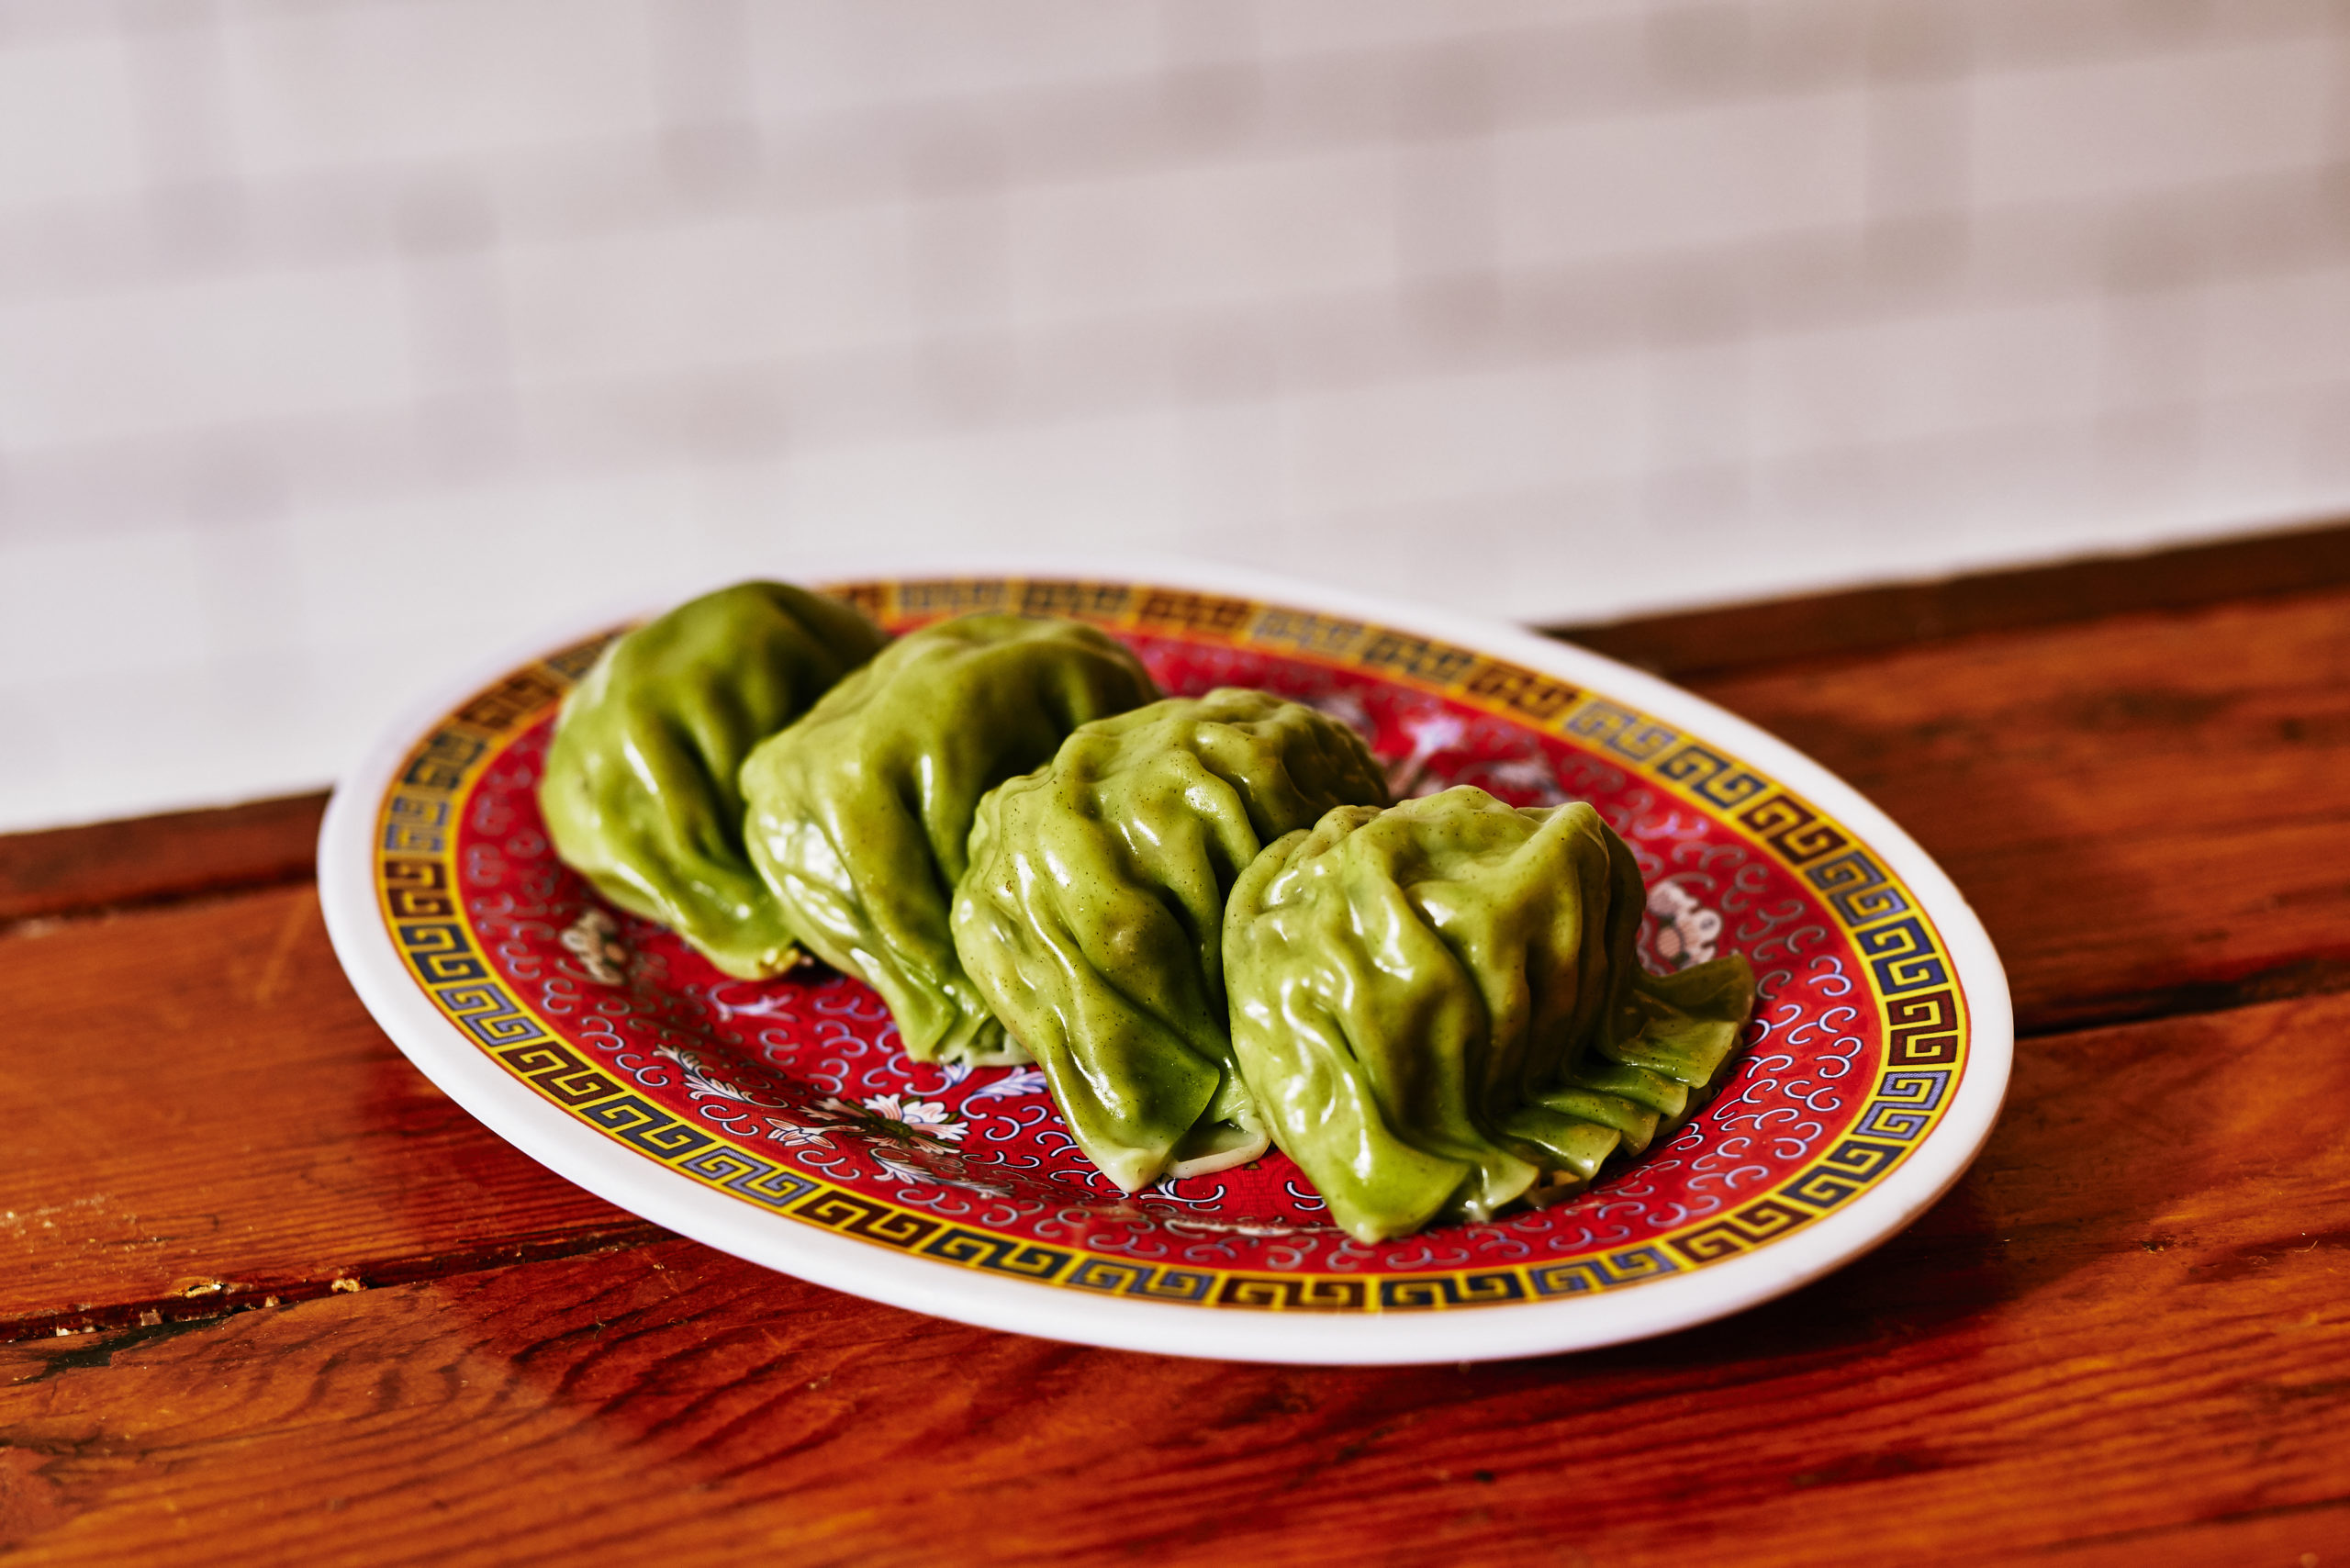 Nom Wah's edamame and Chinese chive dumplings.